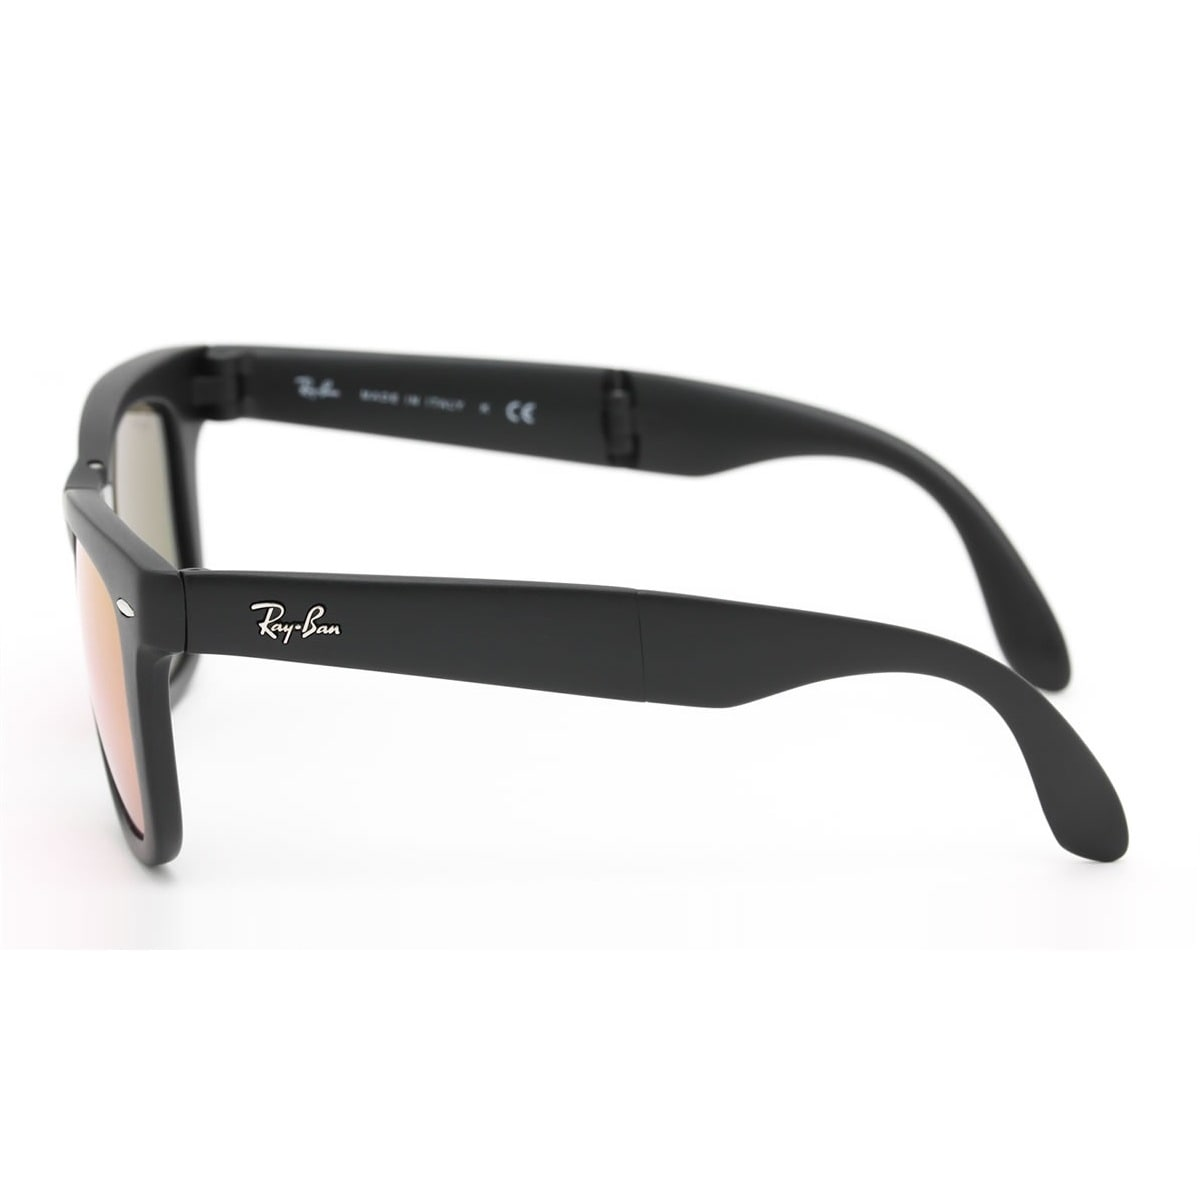 8f7d980f8b2 Shop Ray-Ban RB4105 601S4T Wayfarer Folding Black Frame Cyclamen Flash 50mm  Lens Sunglasses - Free Shipping Today - Overstock - 14431347